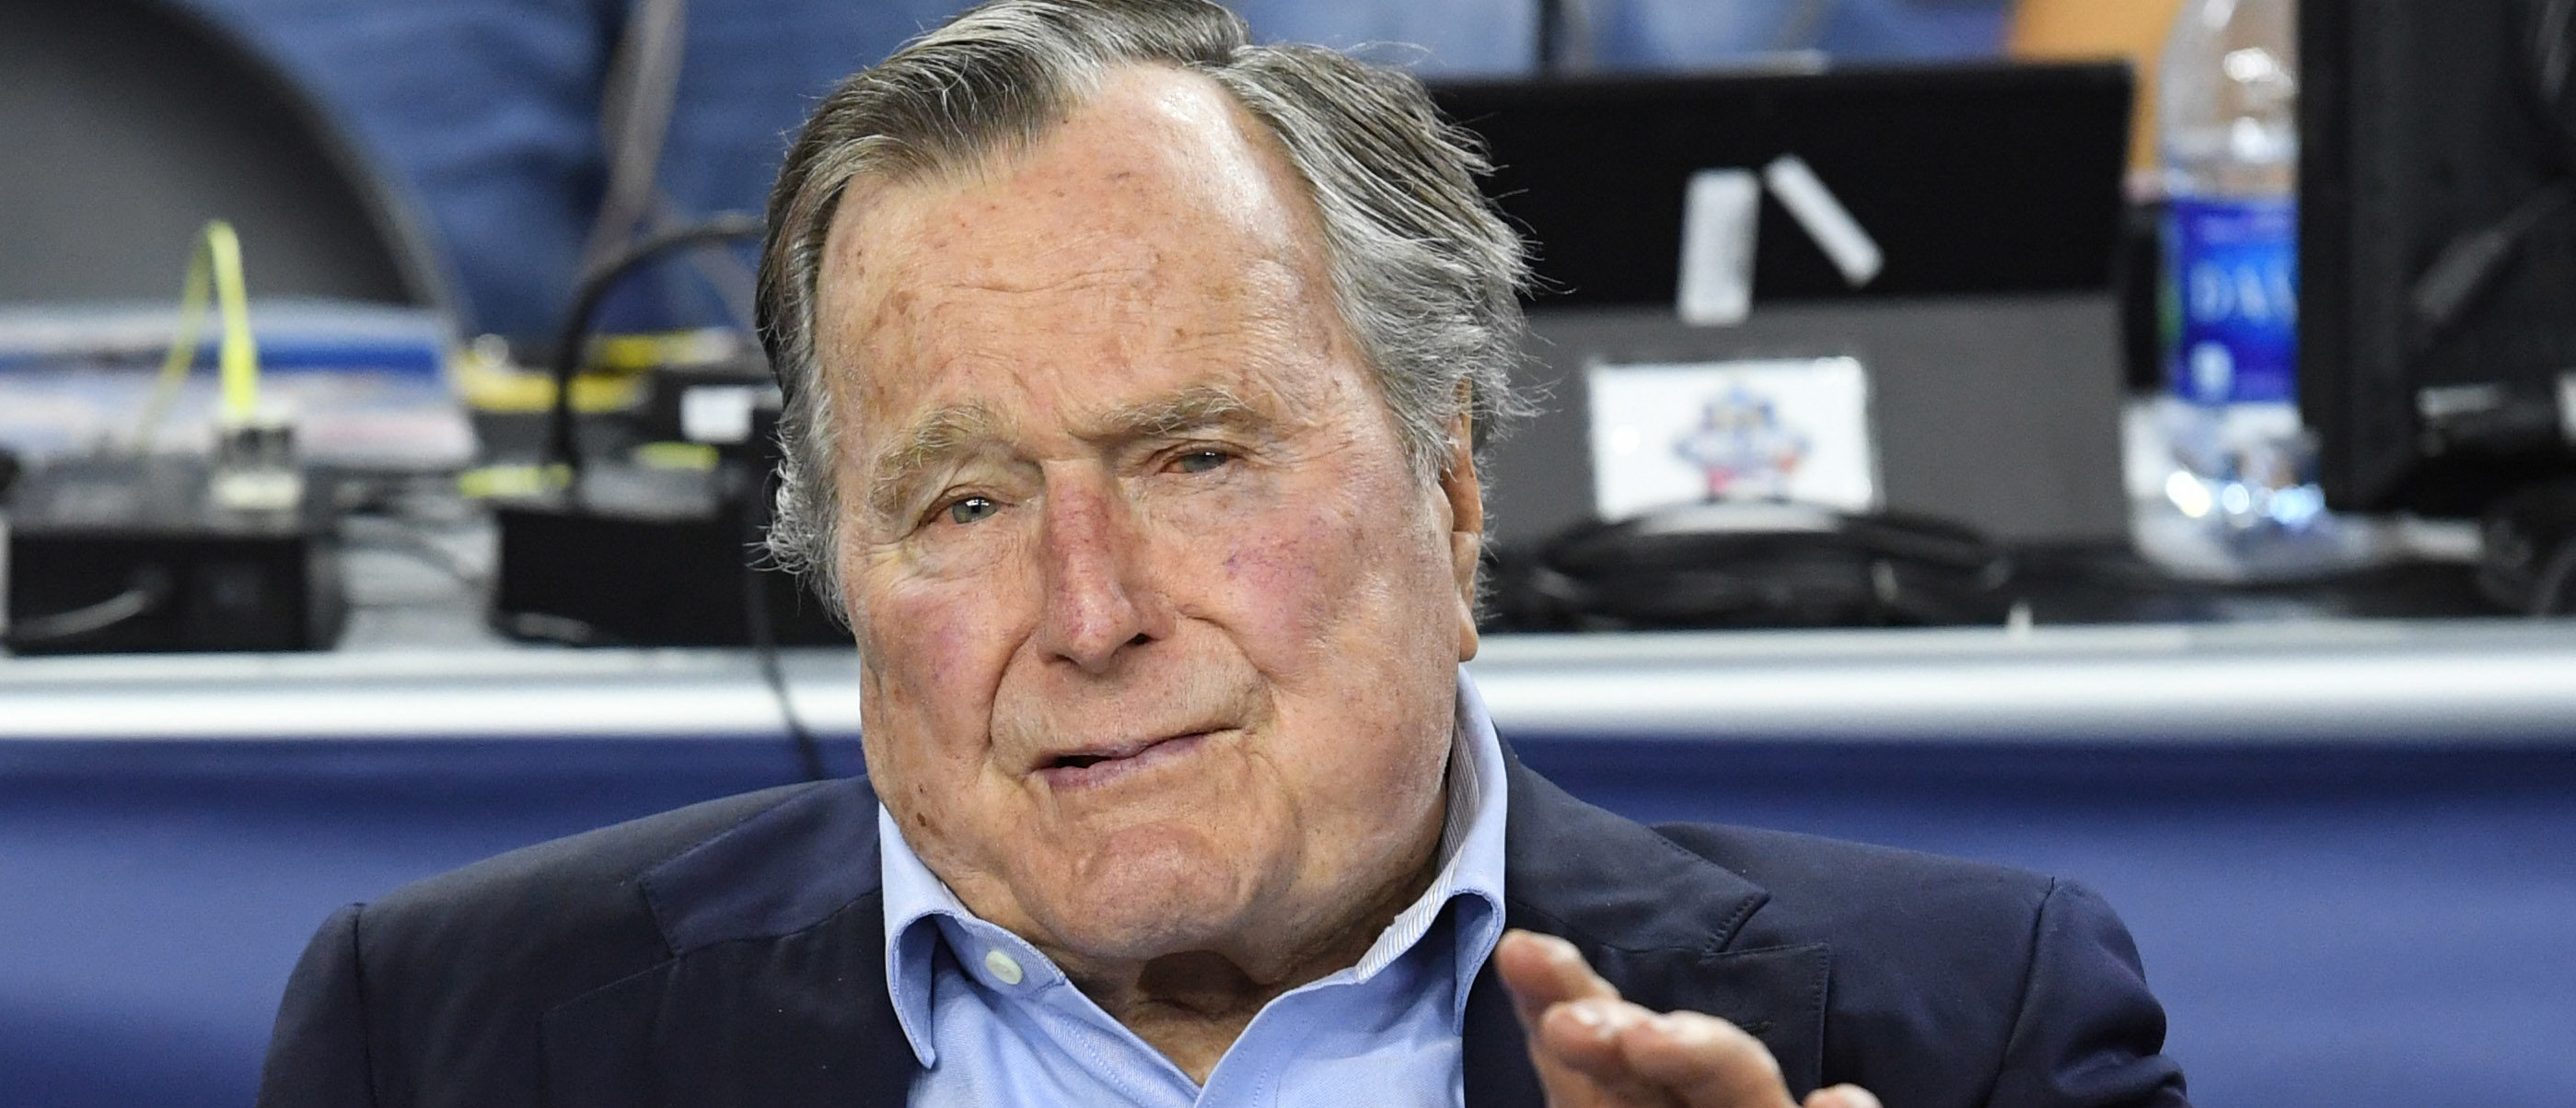 Apr 2, 2016; Houston, TX, USA;  United States former President George H.W. Bush in attendance before the 2016 NCAA Men's Division I Championship semi-final game between the Oklahoma Sooners and Villanova Wildcats at NRG Stadium. Mandatory Credit: Robert Deutsch-USA TODAY Sports - 9224461